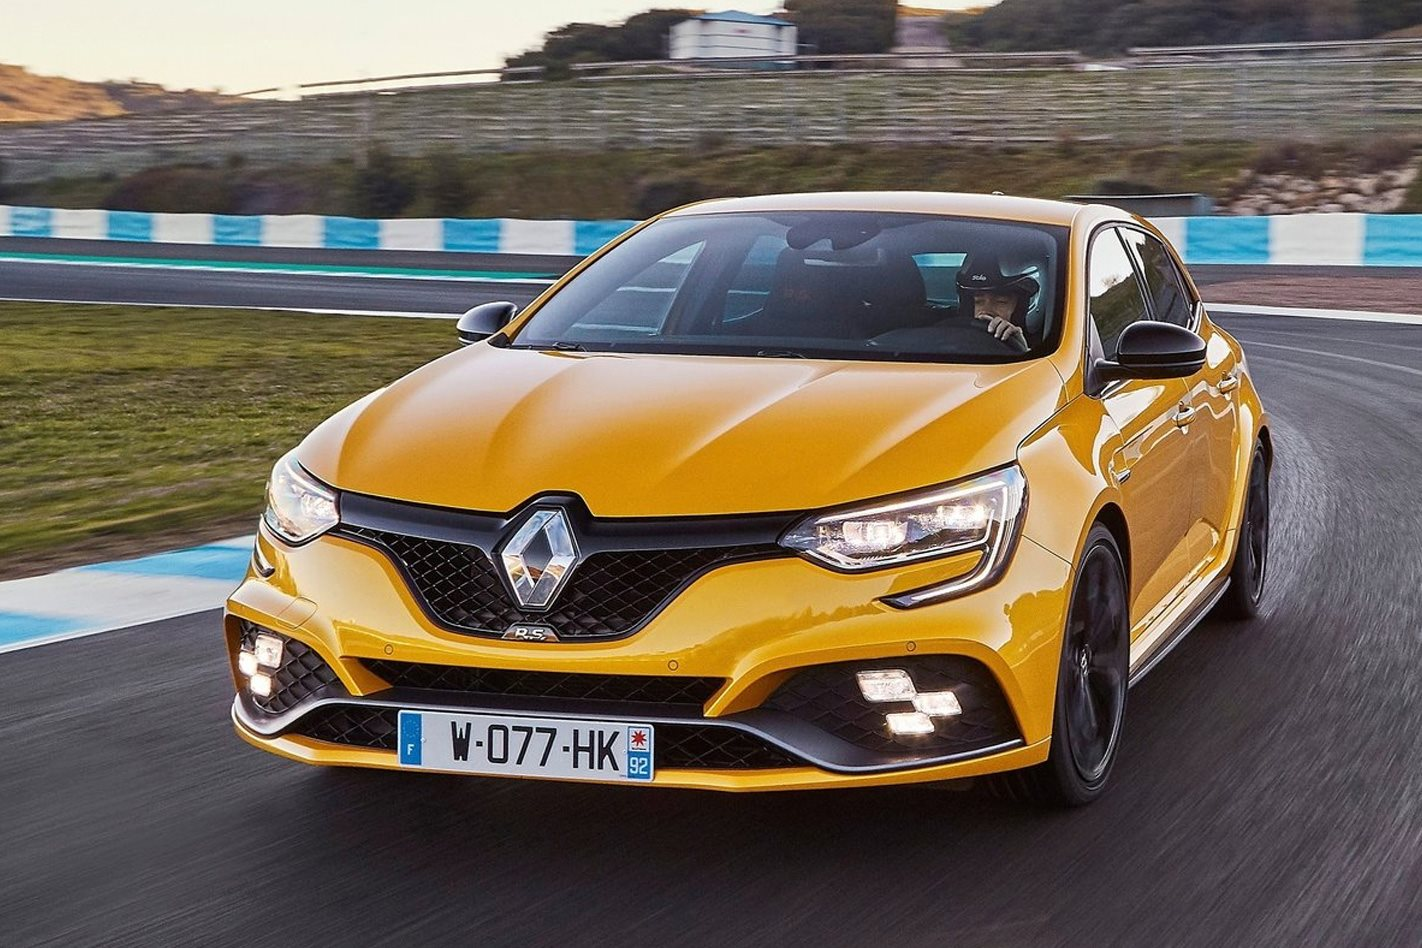 2018 Renault Megane Rs 280 To Cost 45k Followed By Trophy